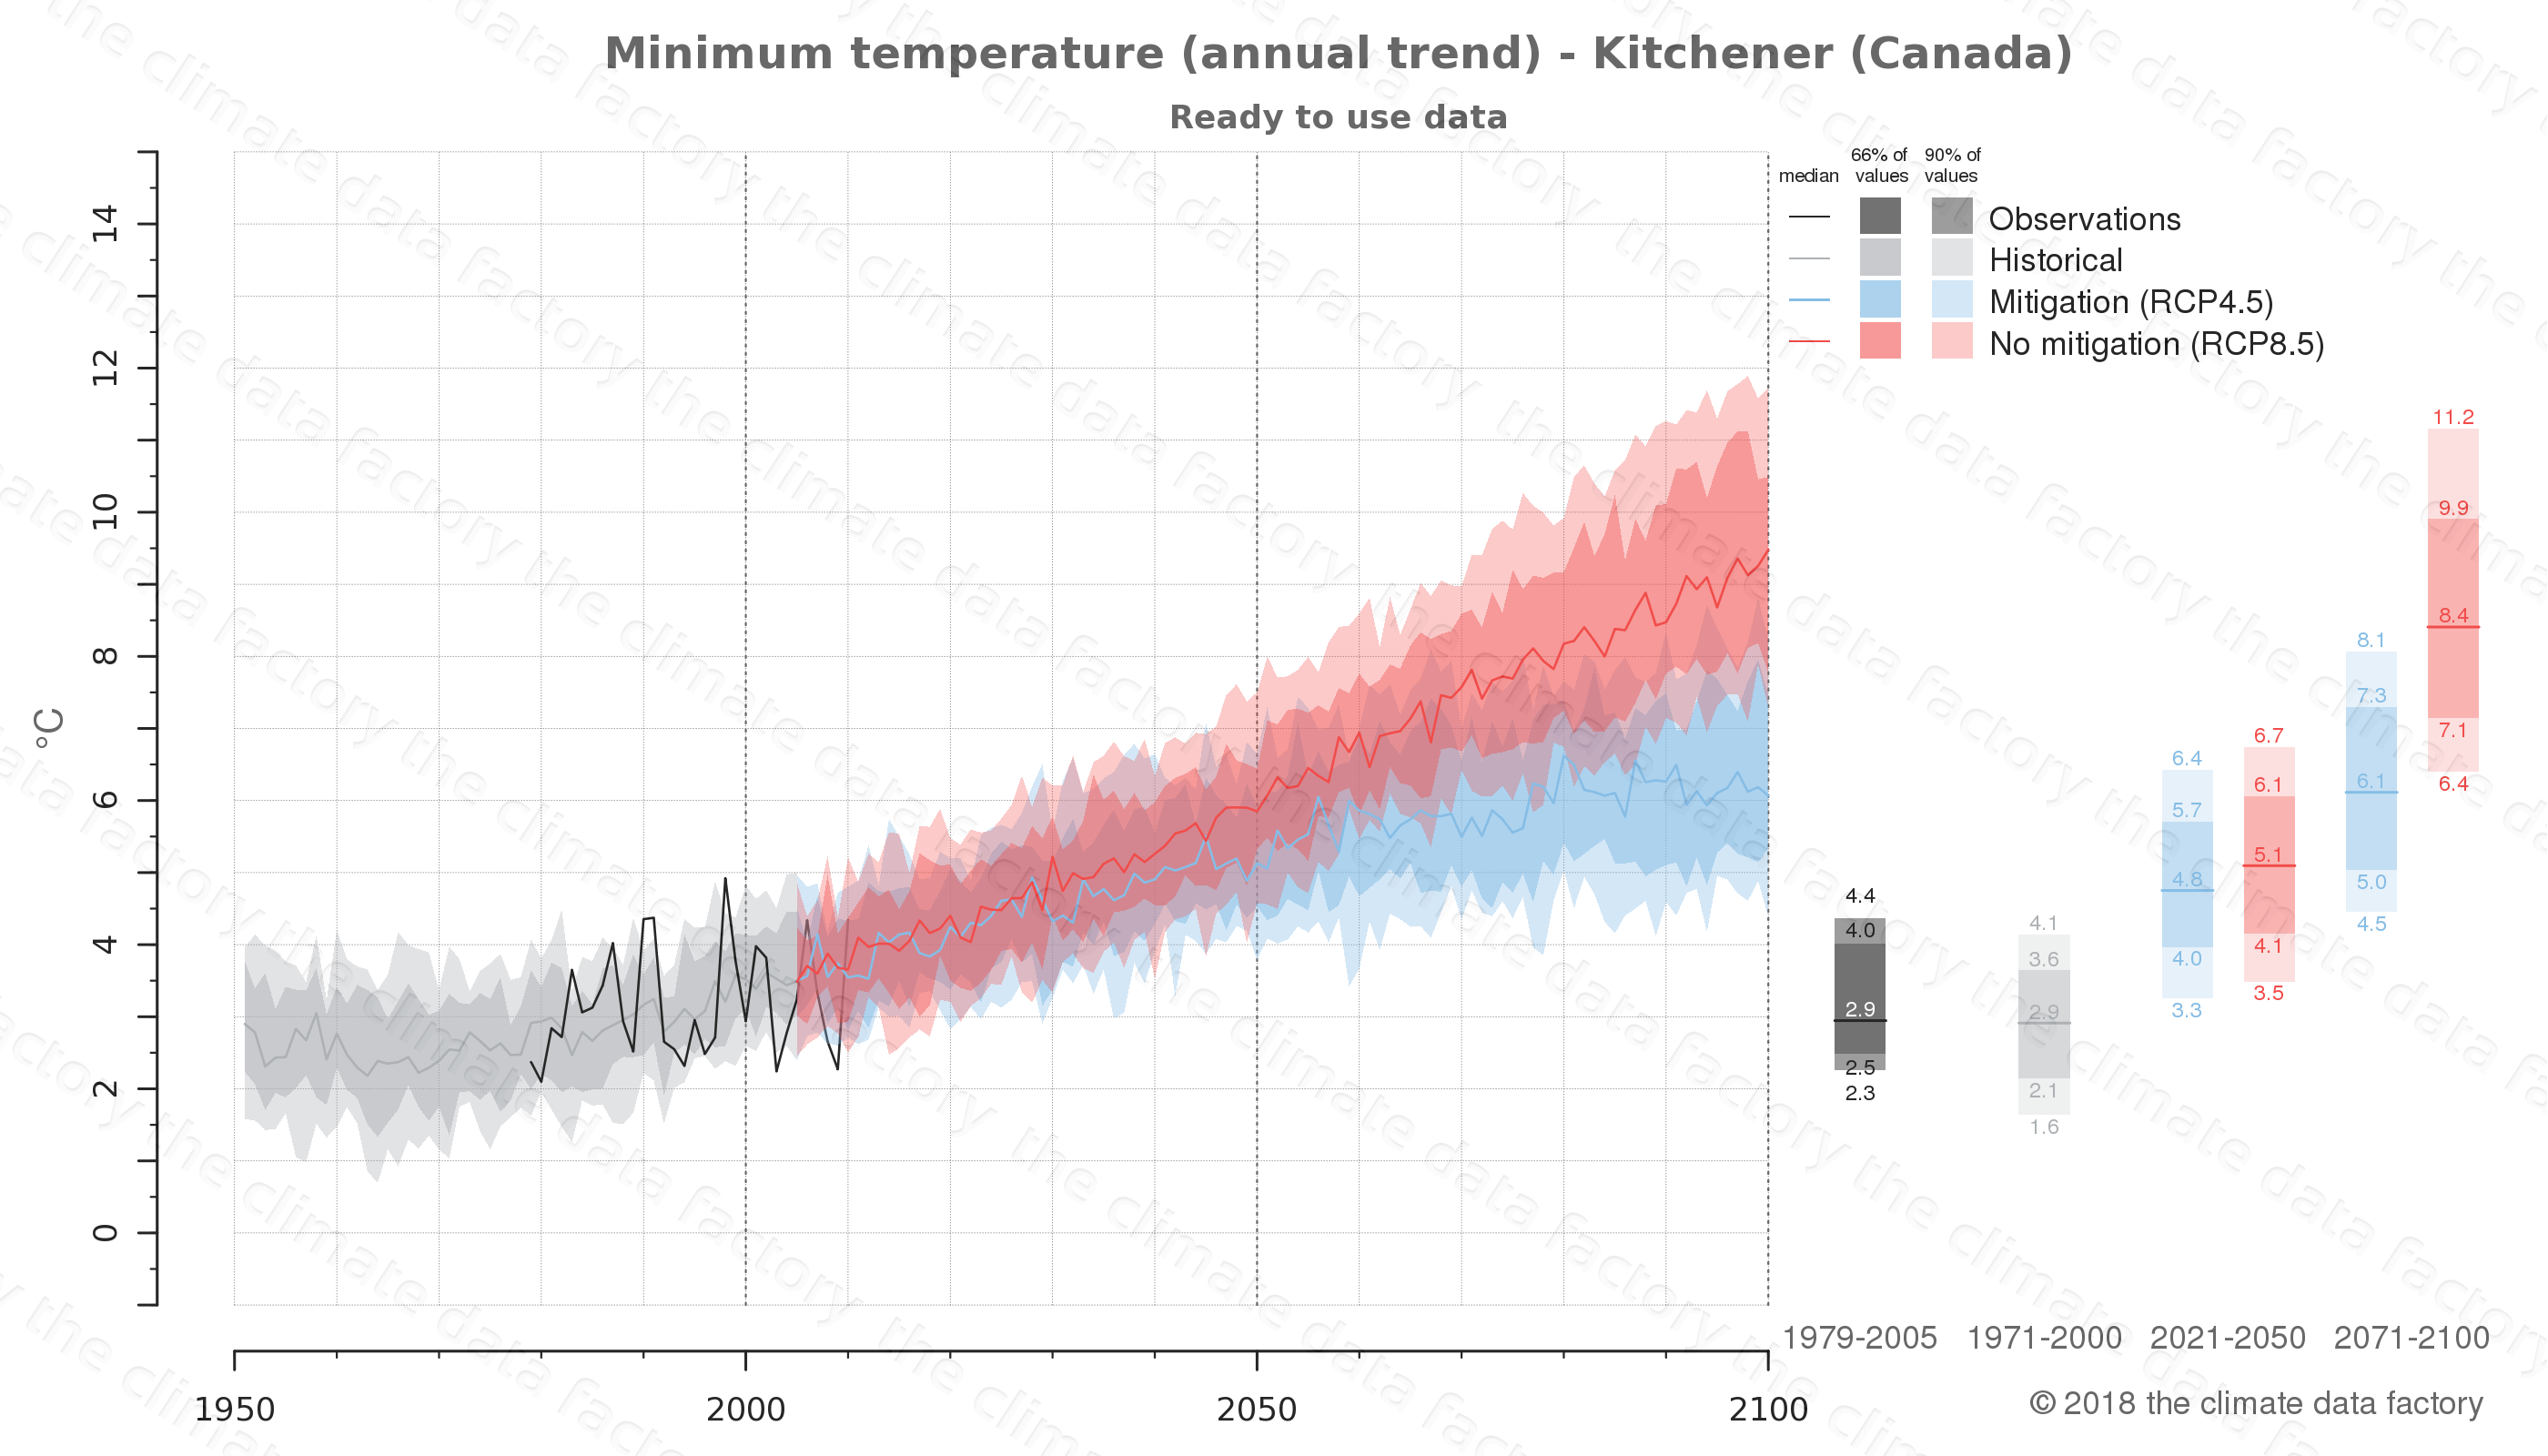 climate change data policy adaptation climate graph city data minimum-temperature kitchener canada